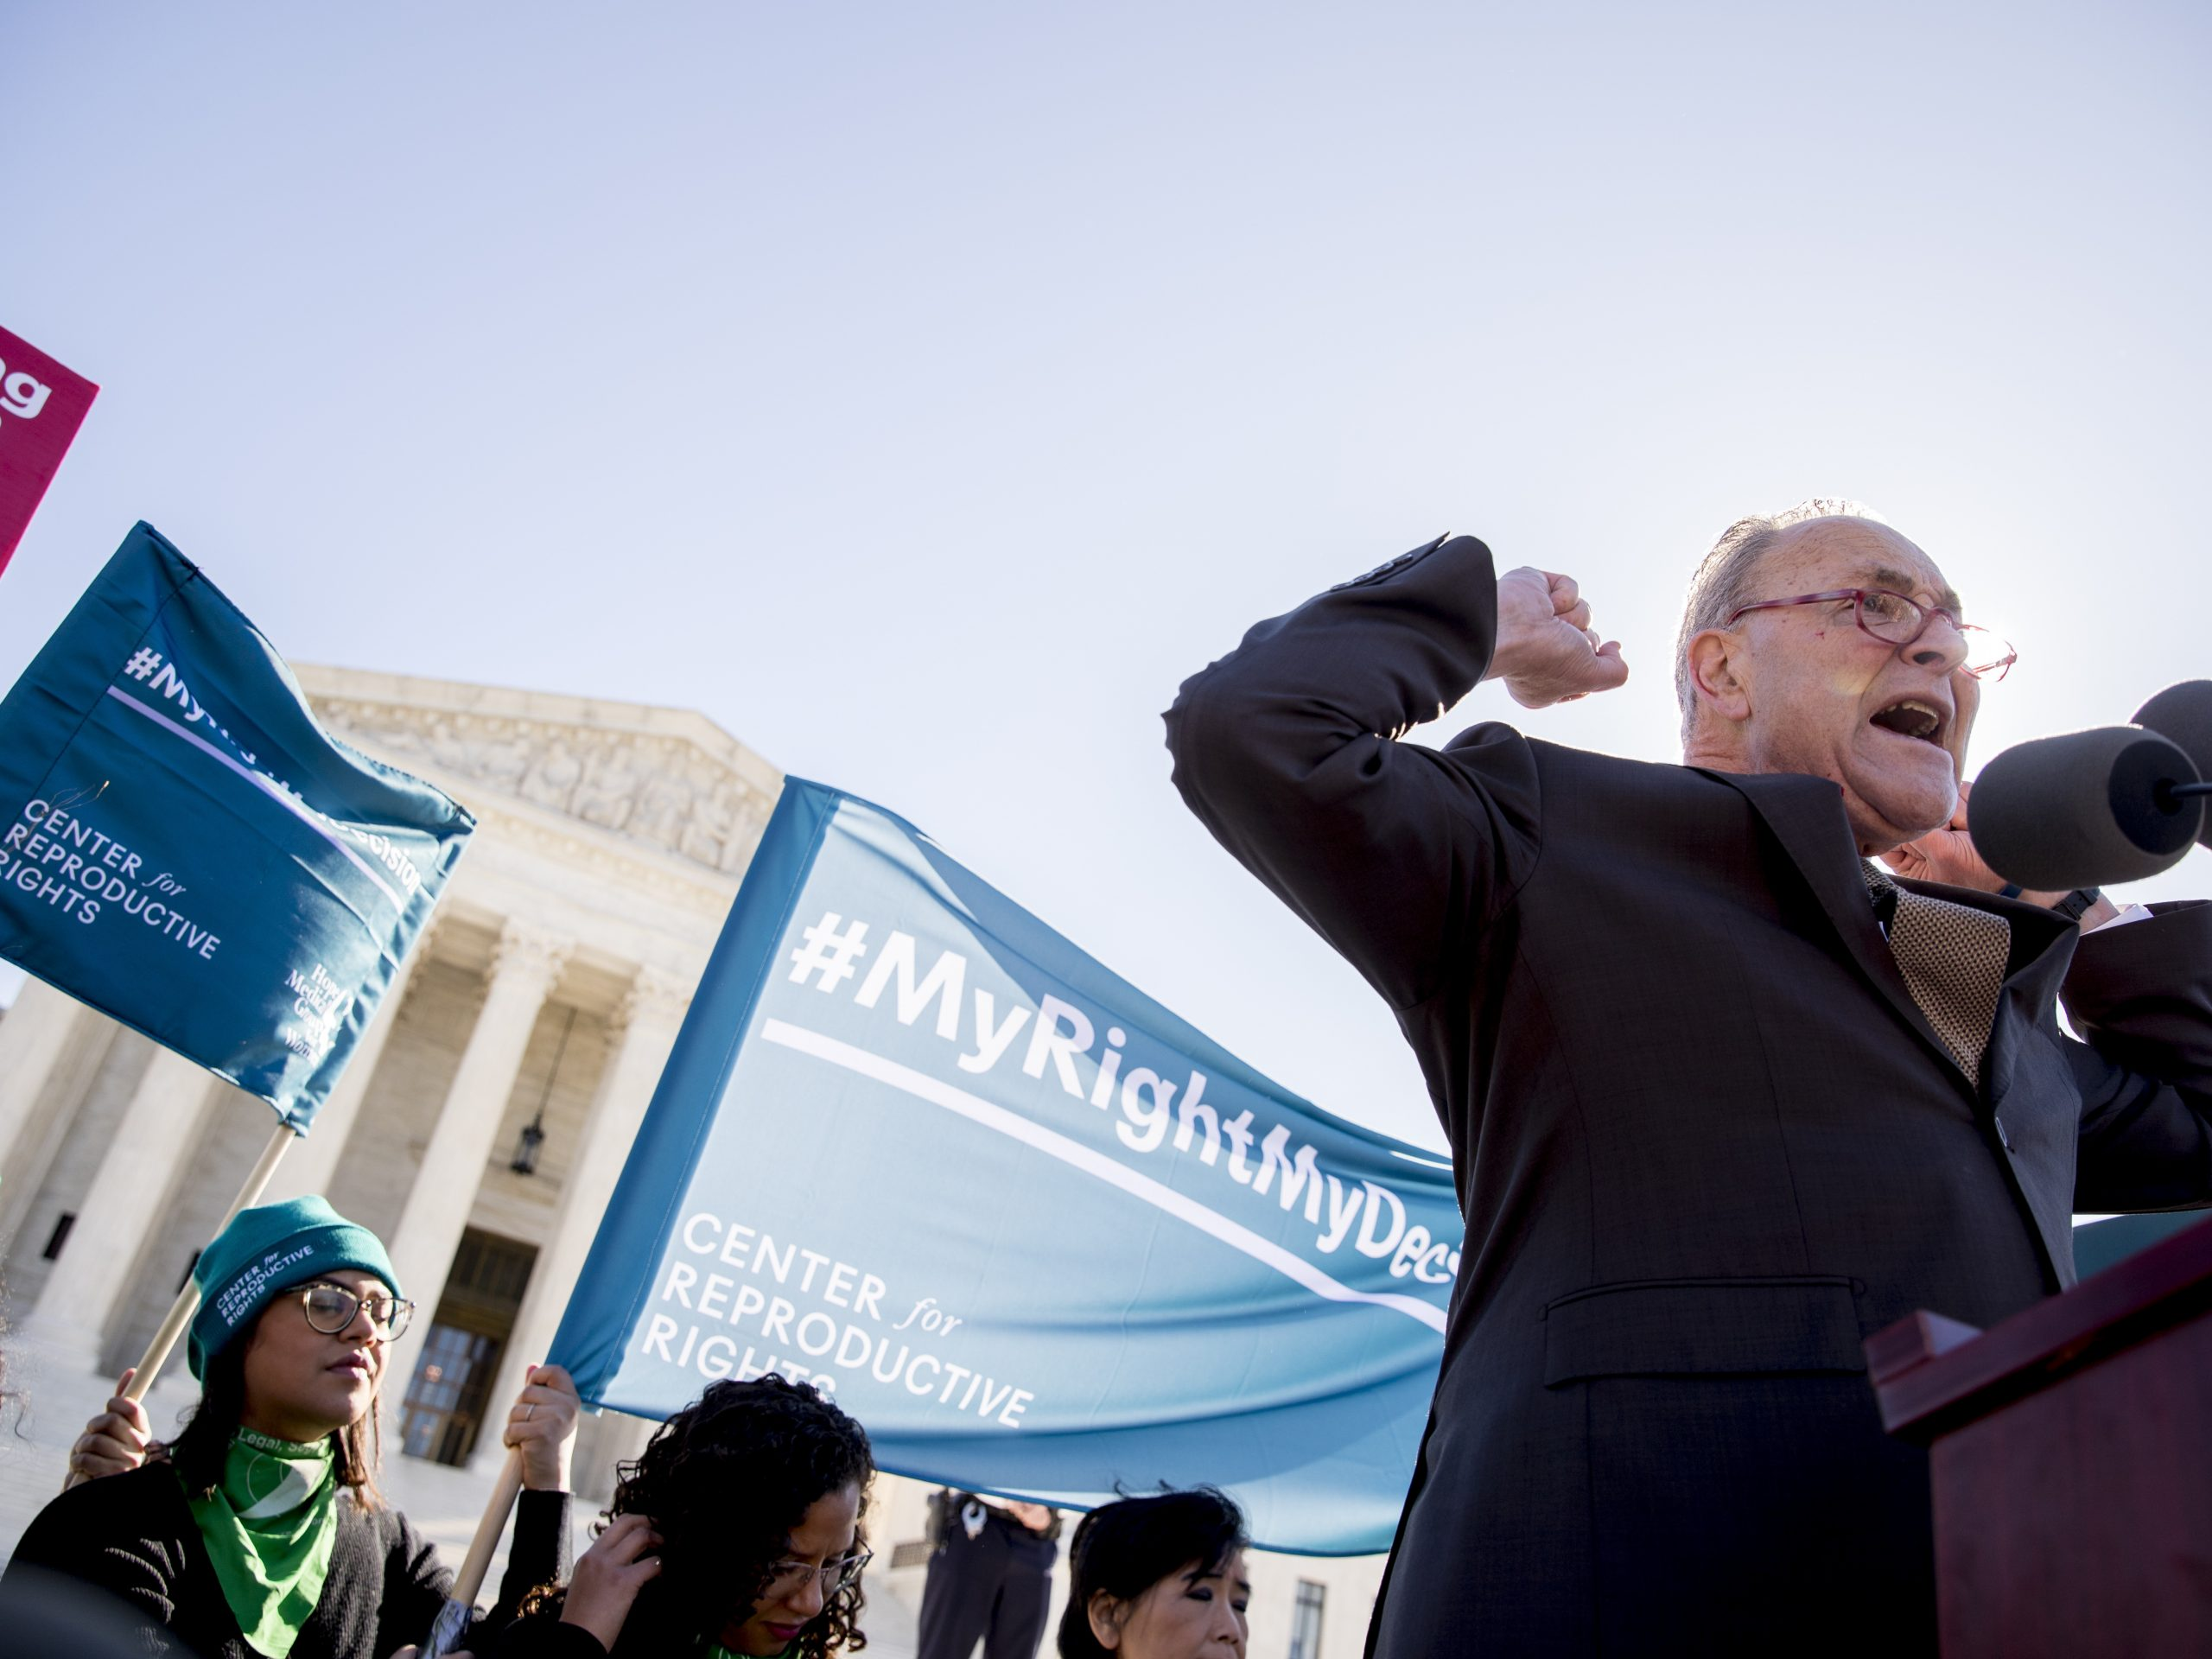 Senate Minority Leader Chuck Schumer is being criticized for comments he made to abortion-rights activists at a rally outside the Supreme Court on Wednesday.